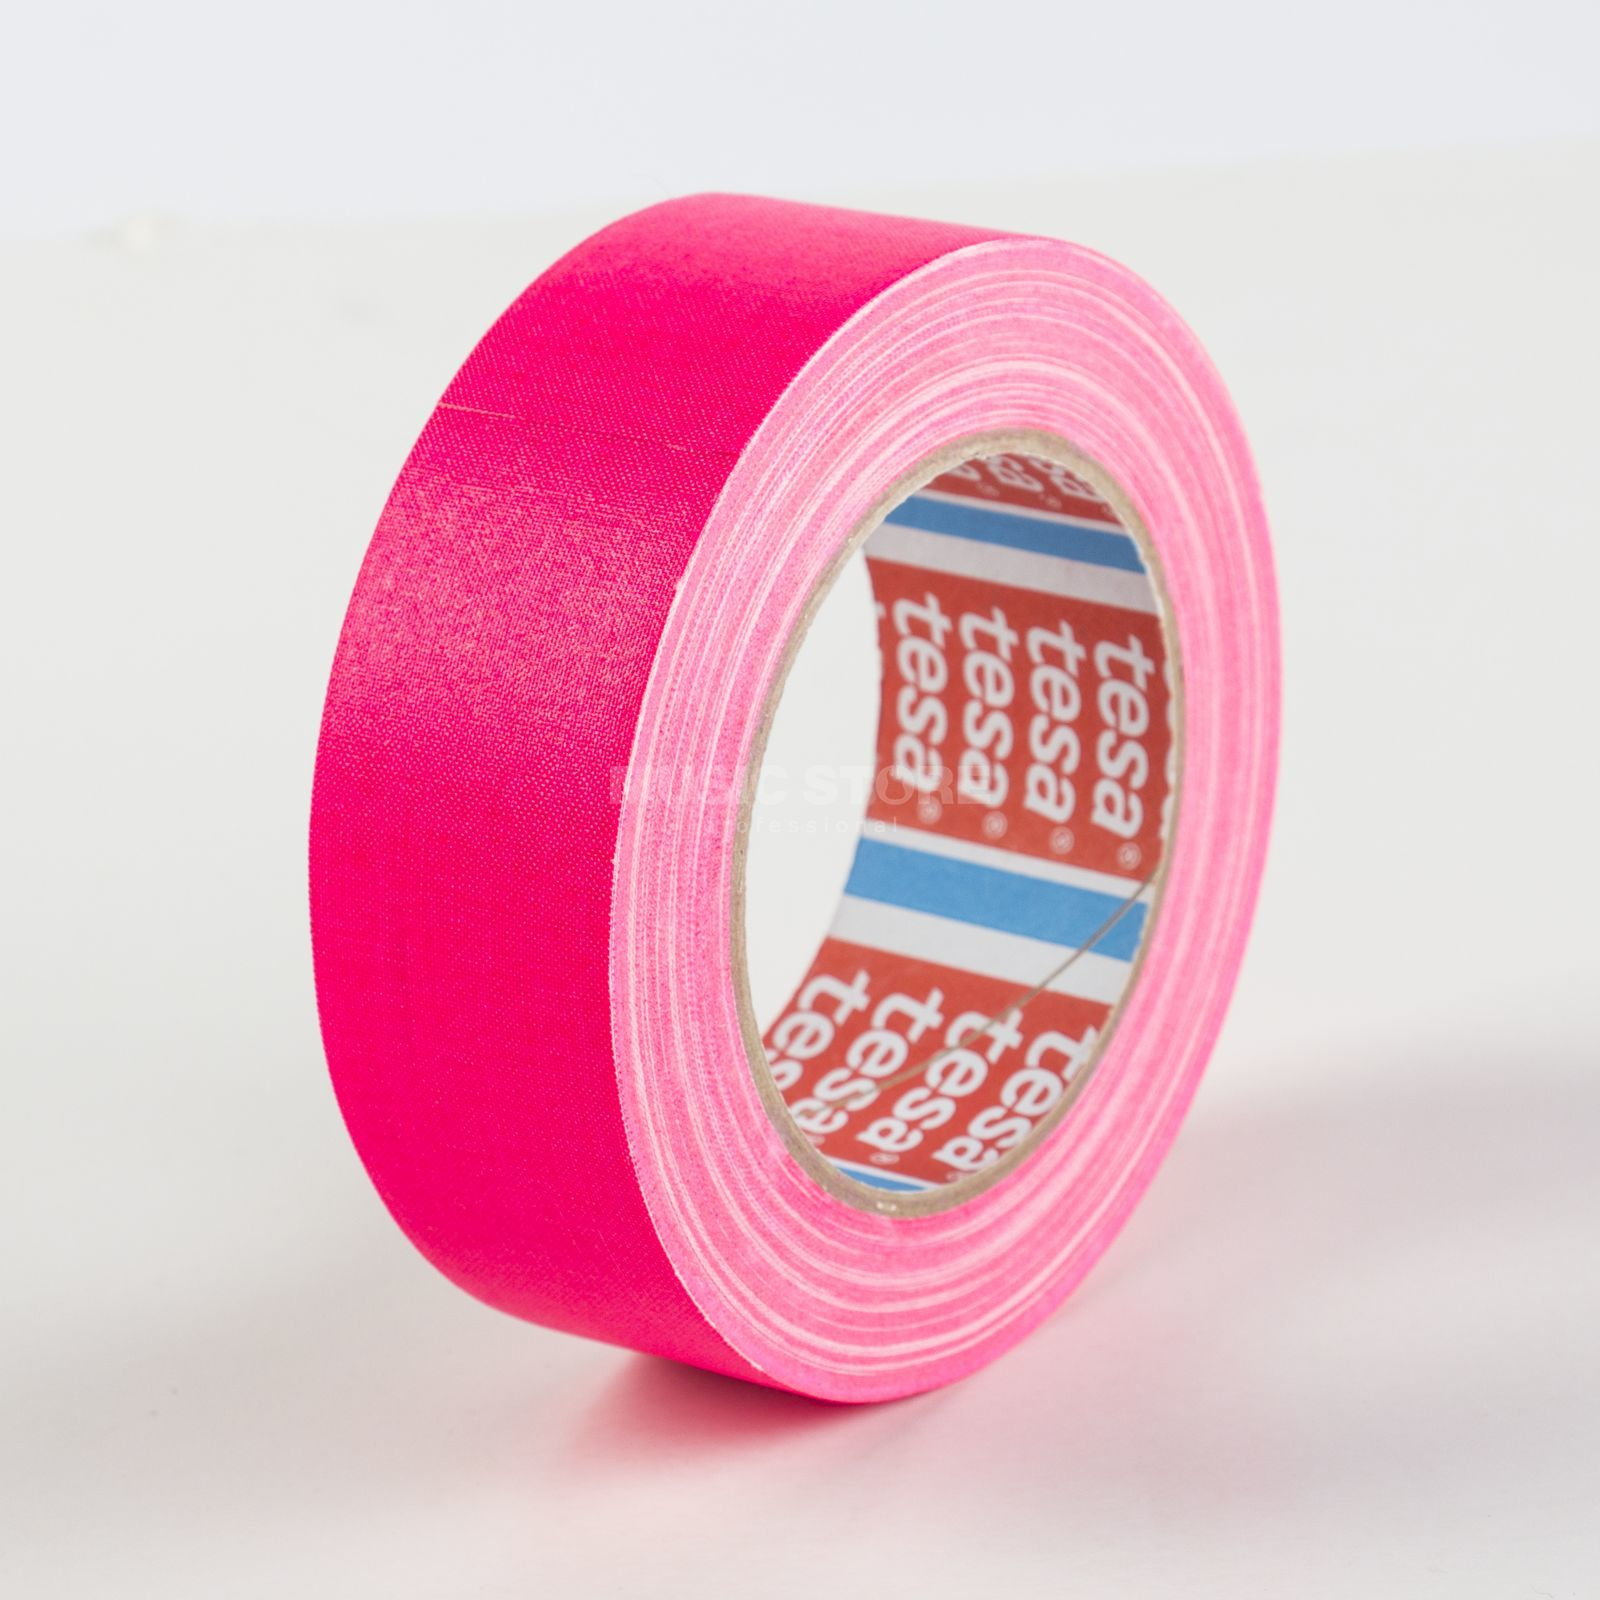 Tesa Highlight Gaffa Tape 4671 neonpink, 25m, 38mm Produktbild